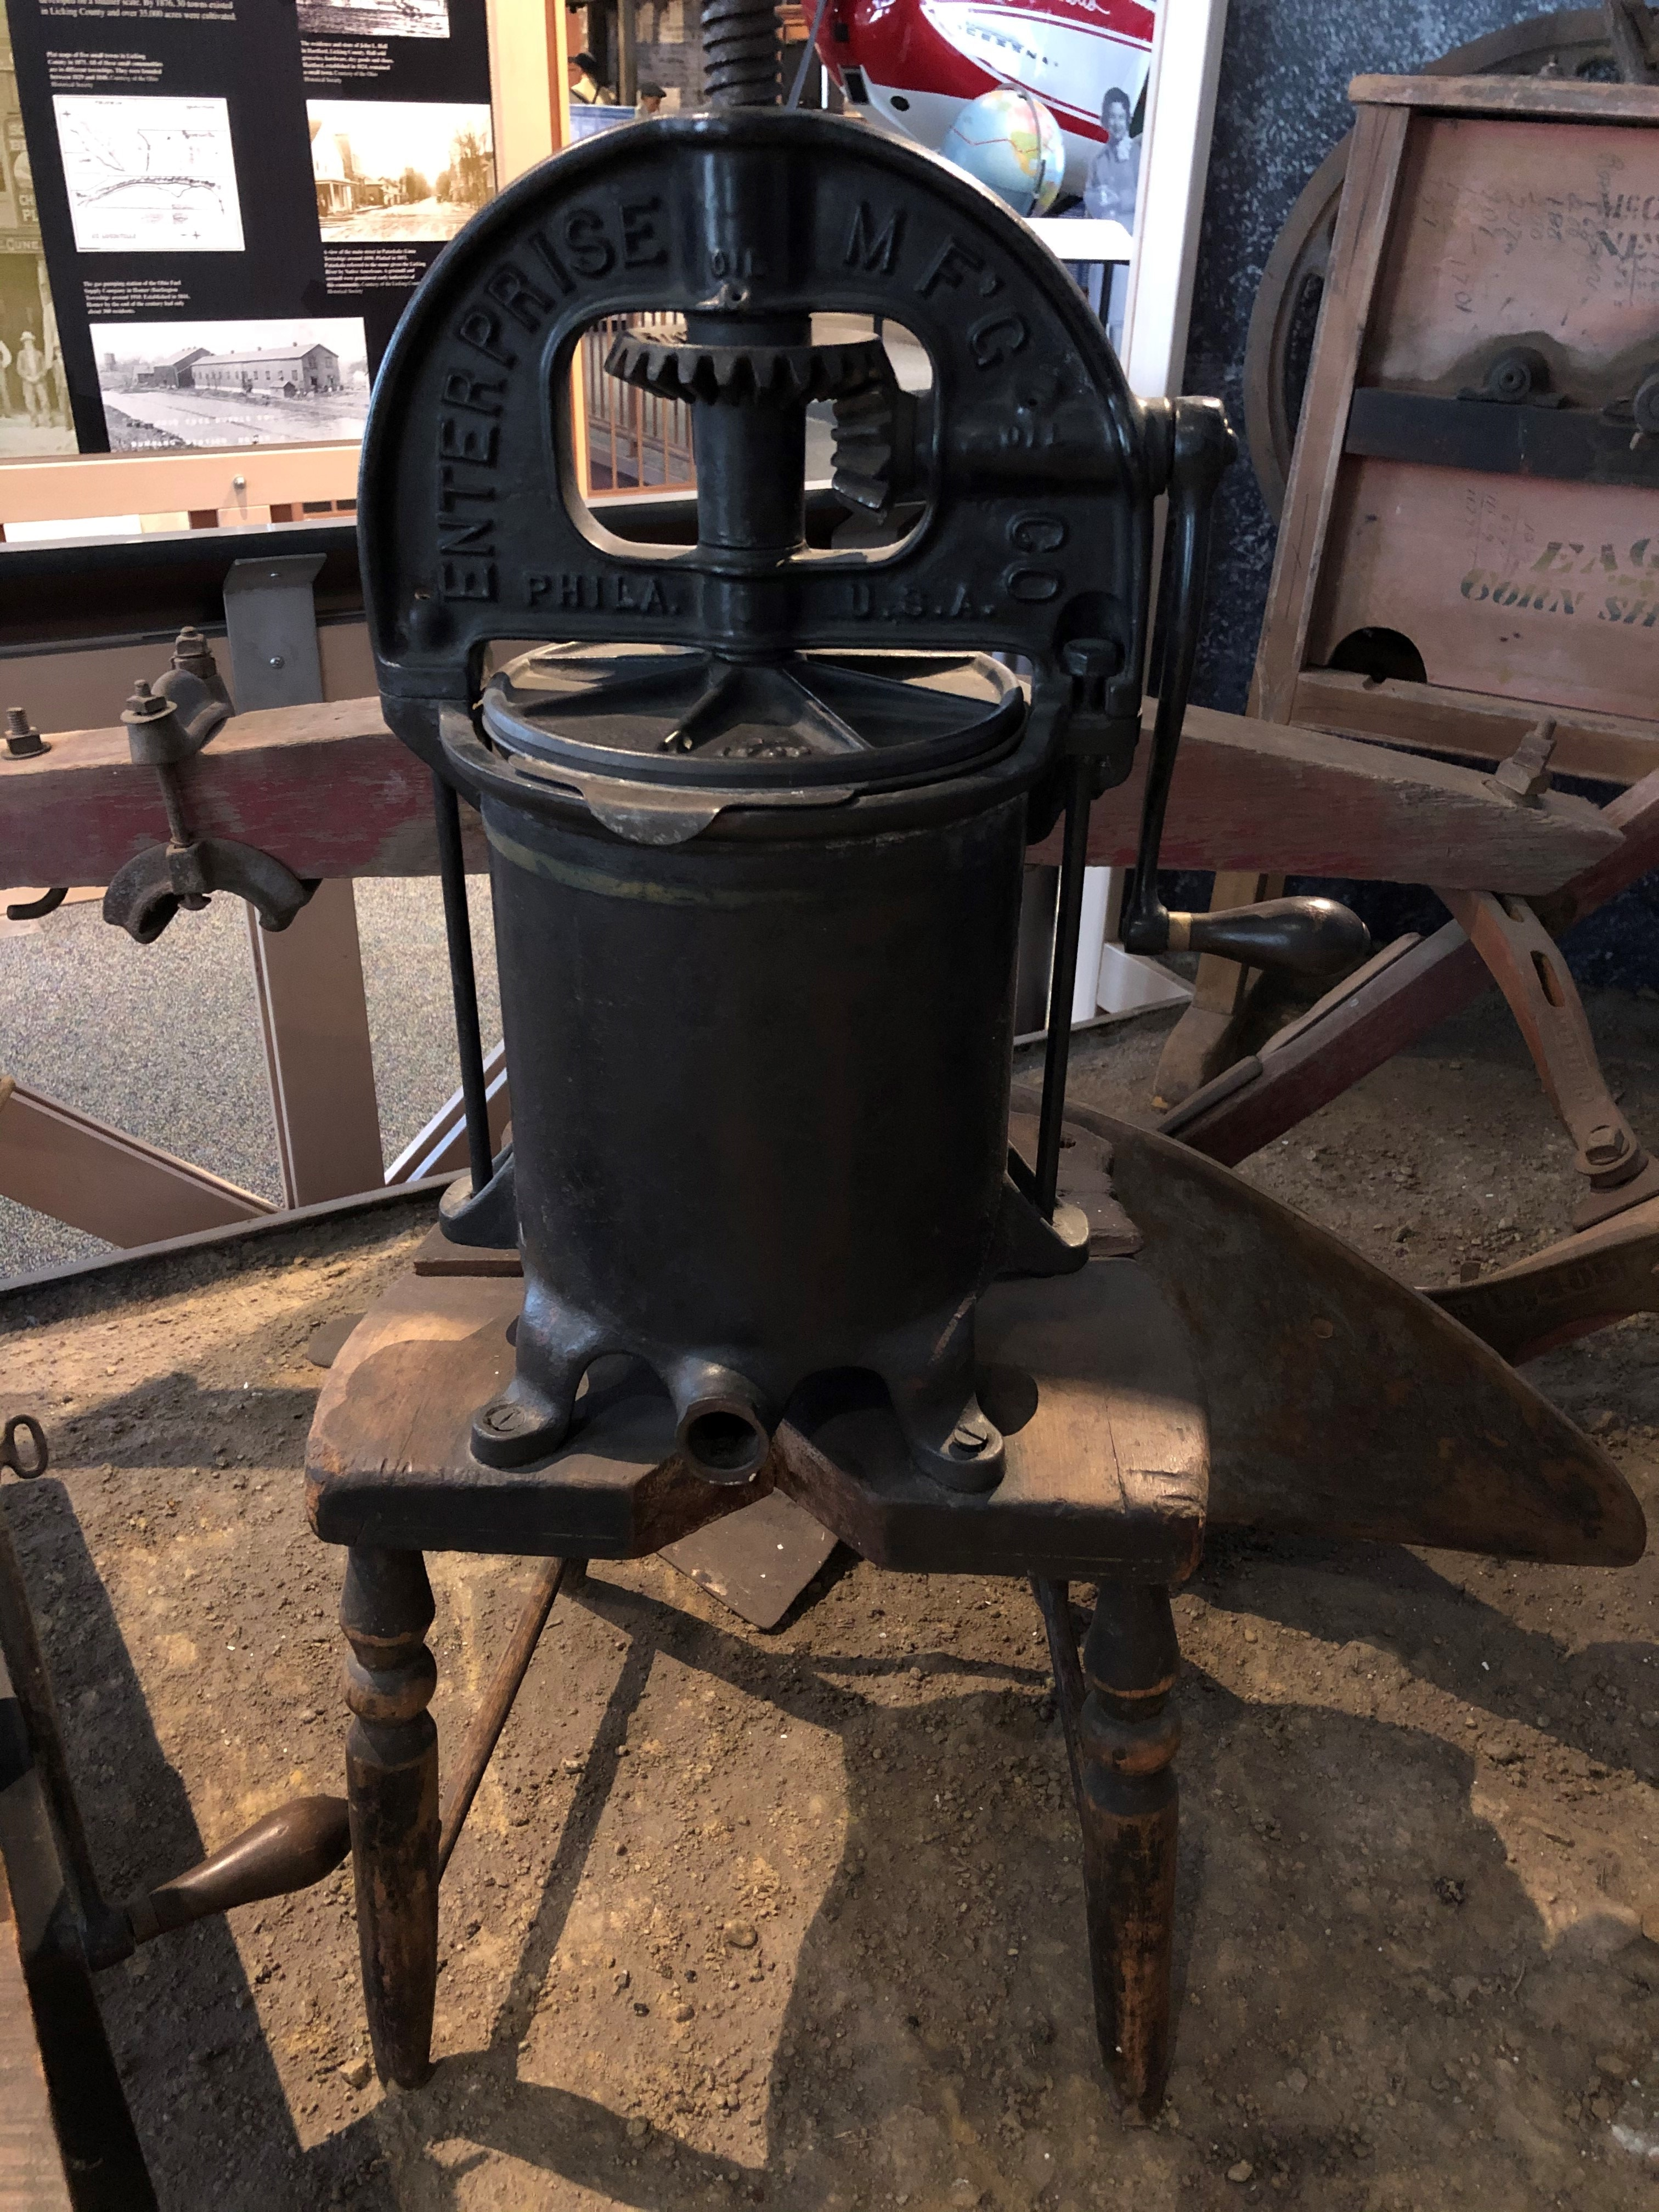 The lard press was attached to the seat of a chair to give it a permanent base.